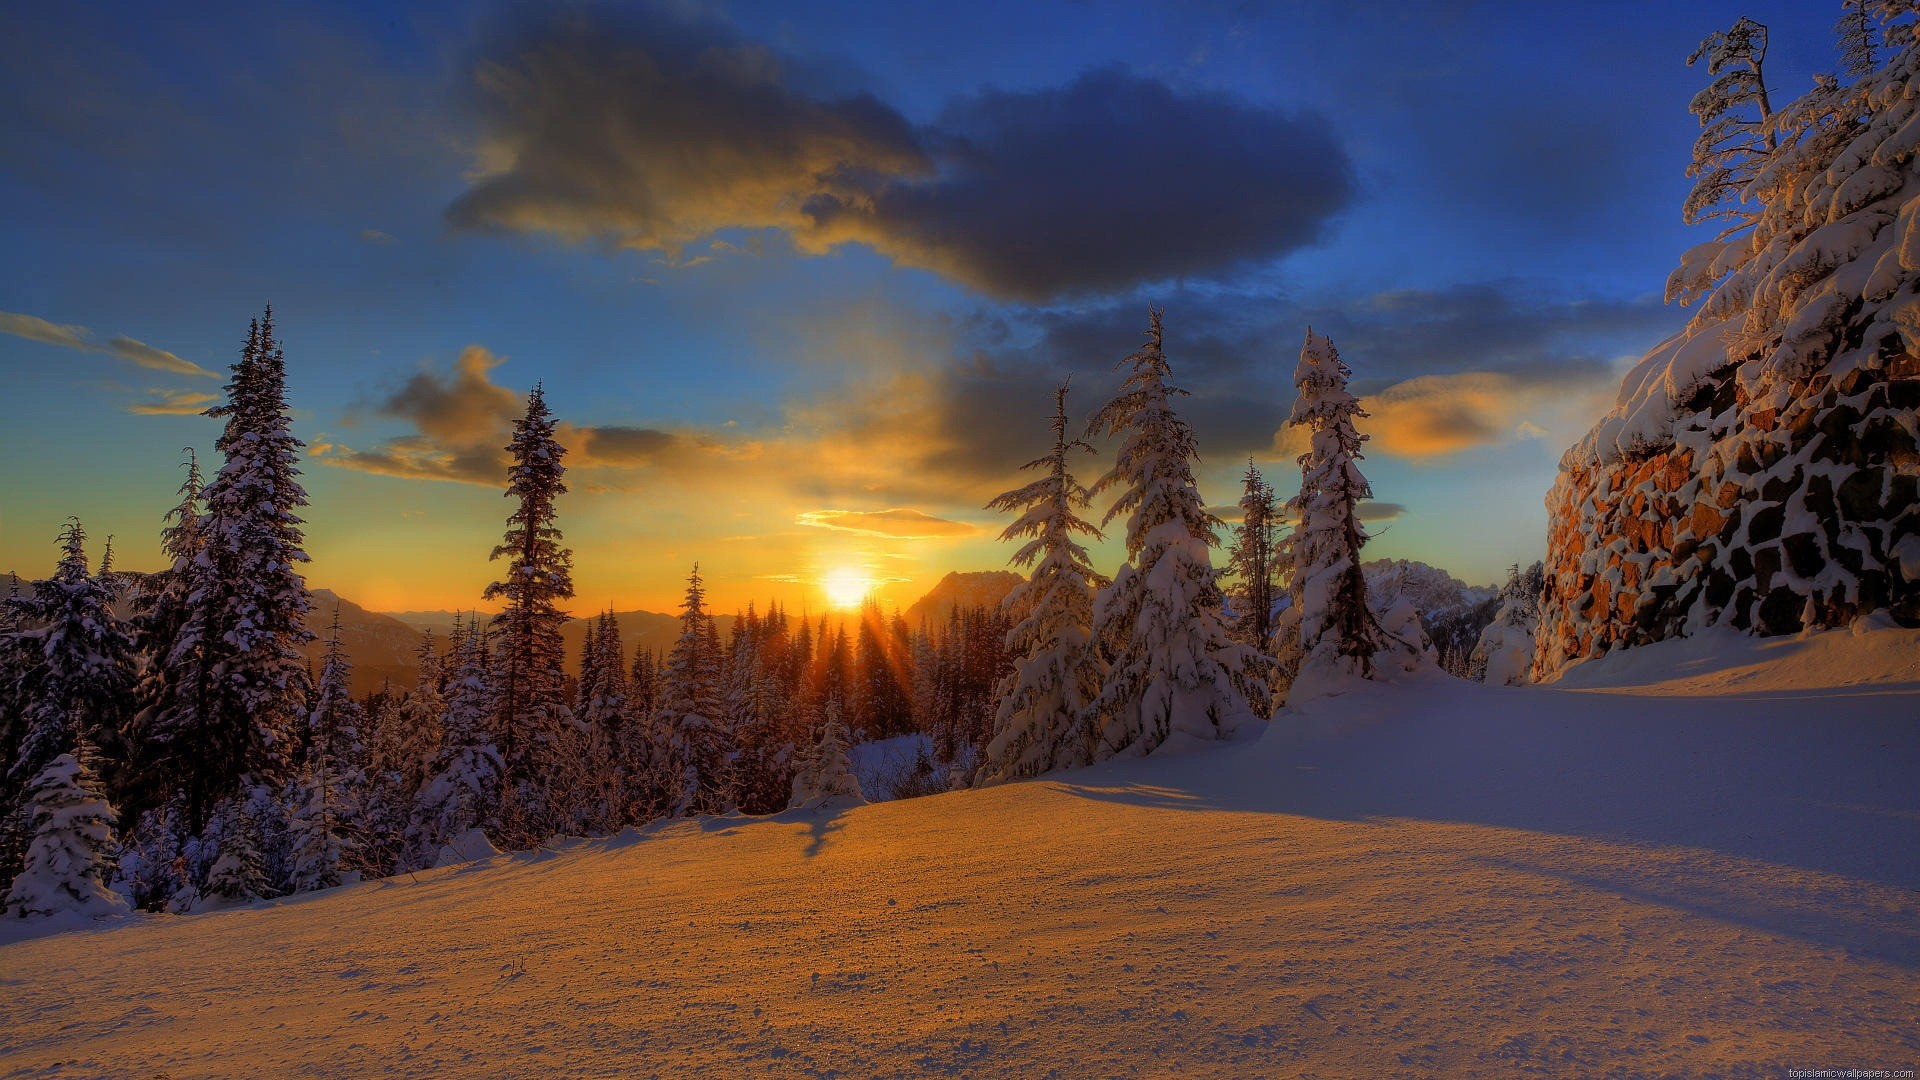 1920x1080 Winter Sunset Wallpapers 1080p with HD Wallpaper Resolution  px  486.71 KB Landscape Nature Dark Mountain